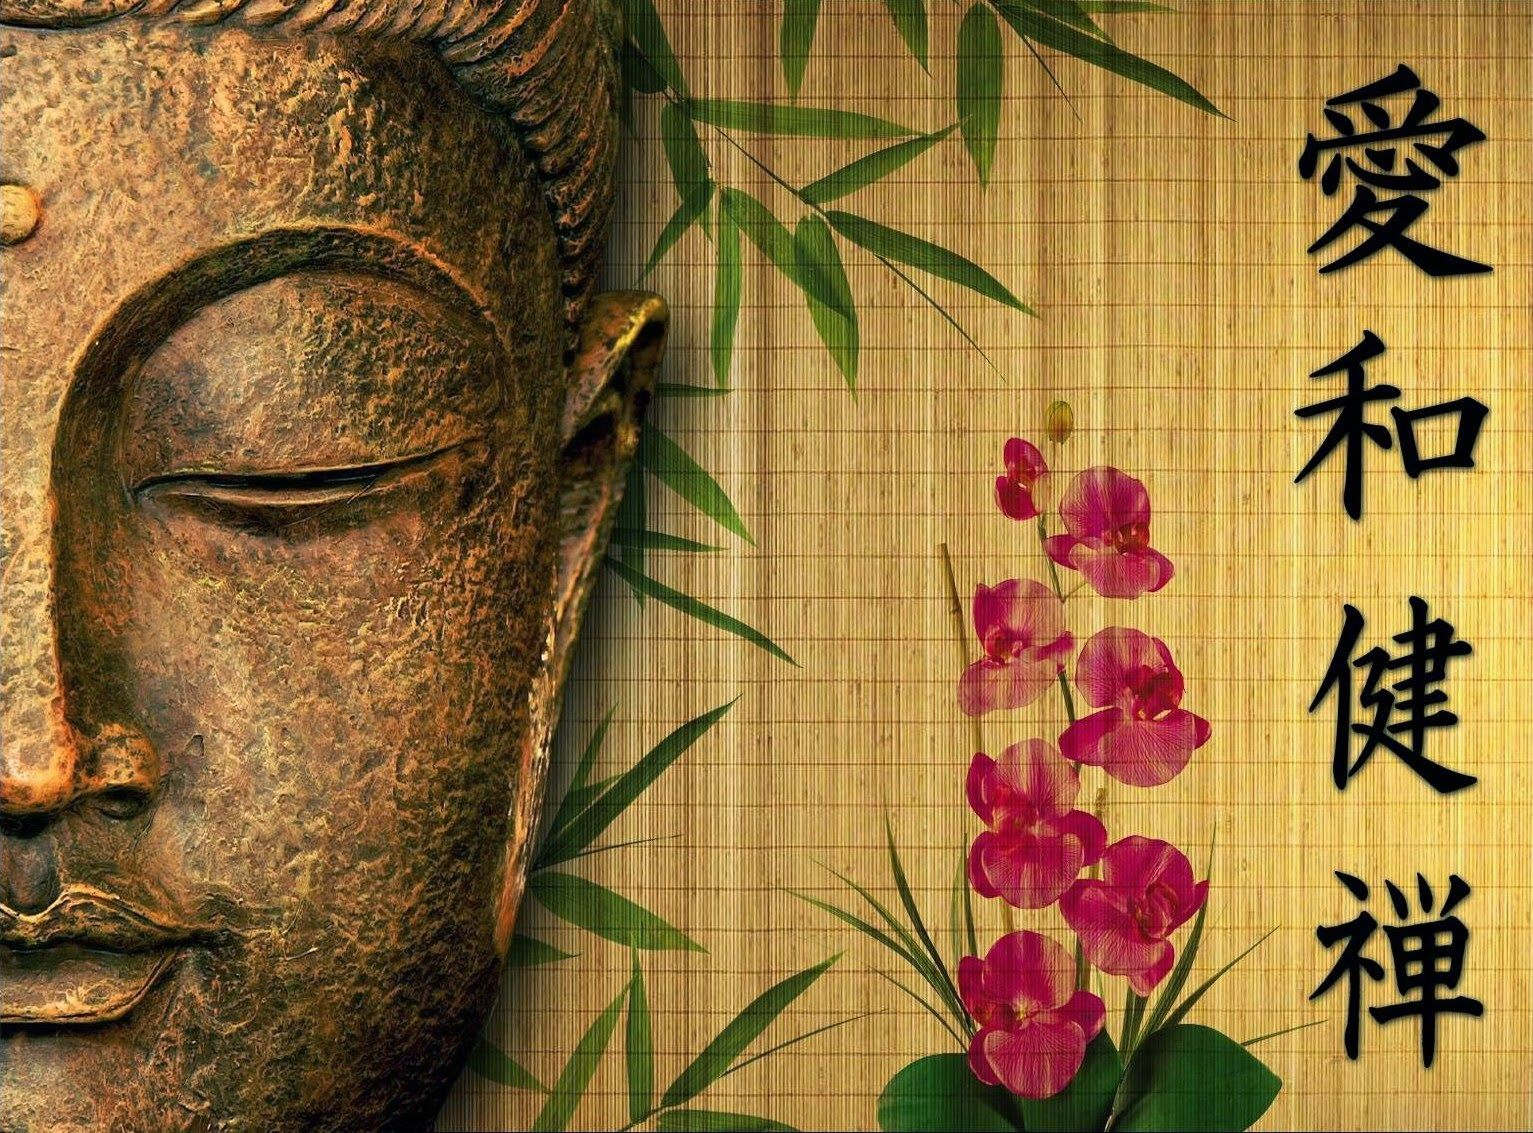 1533x1133 Lord Buddha face Art HD images and statue wallpaper